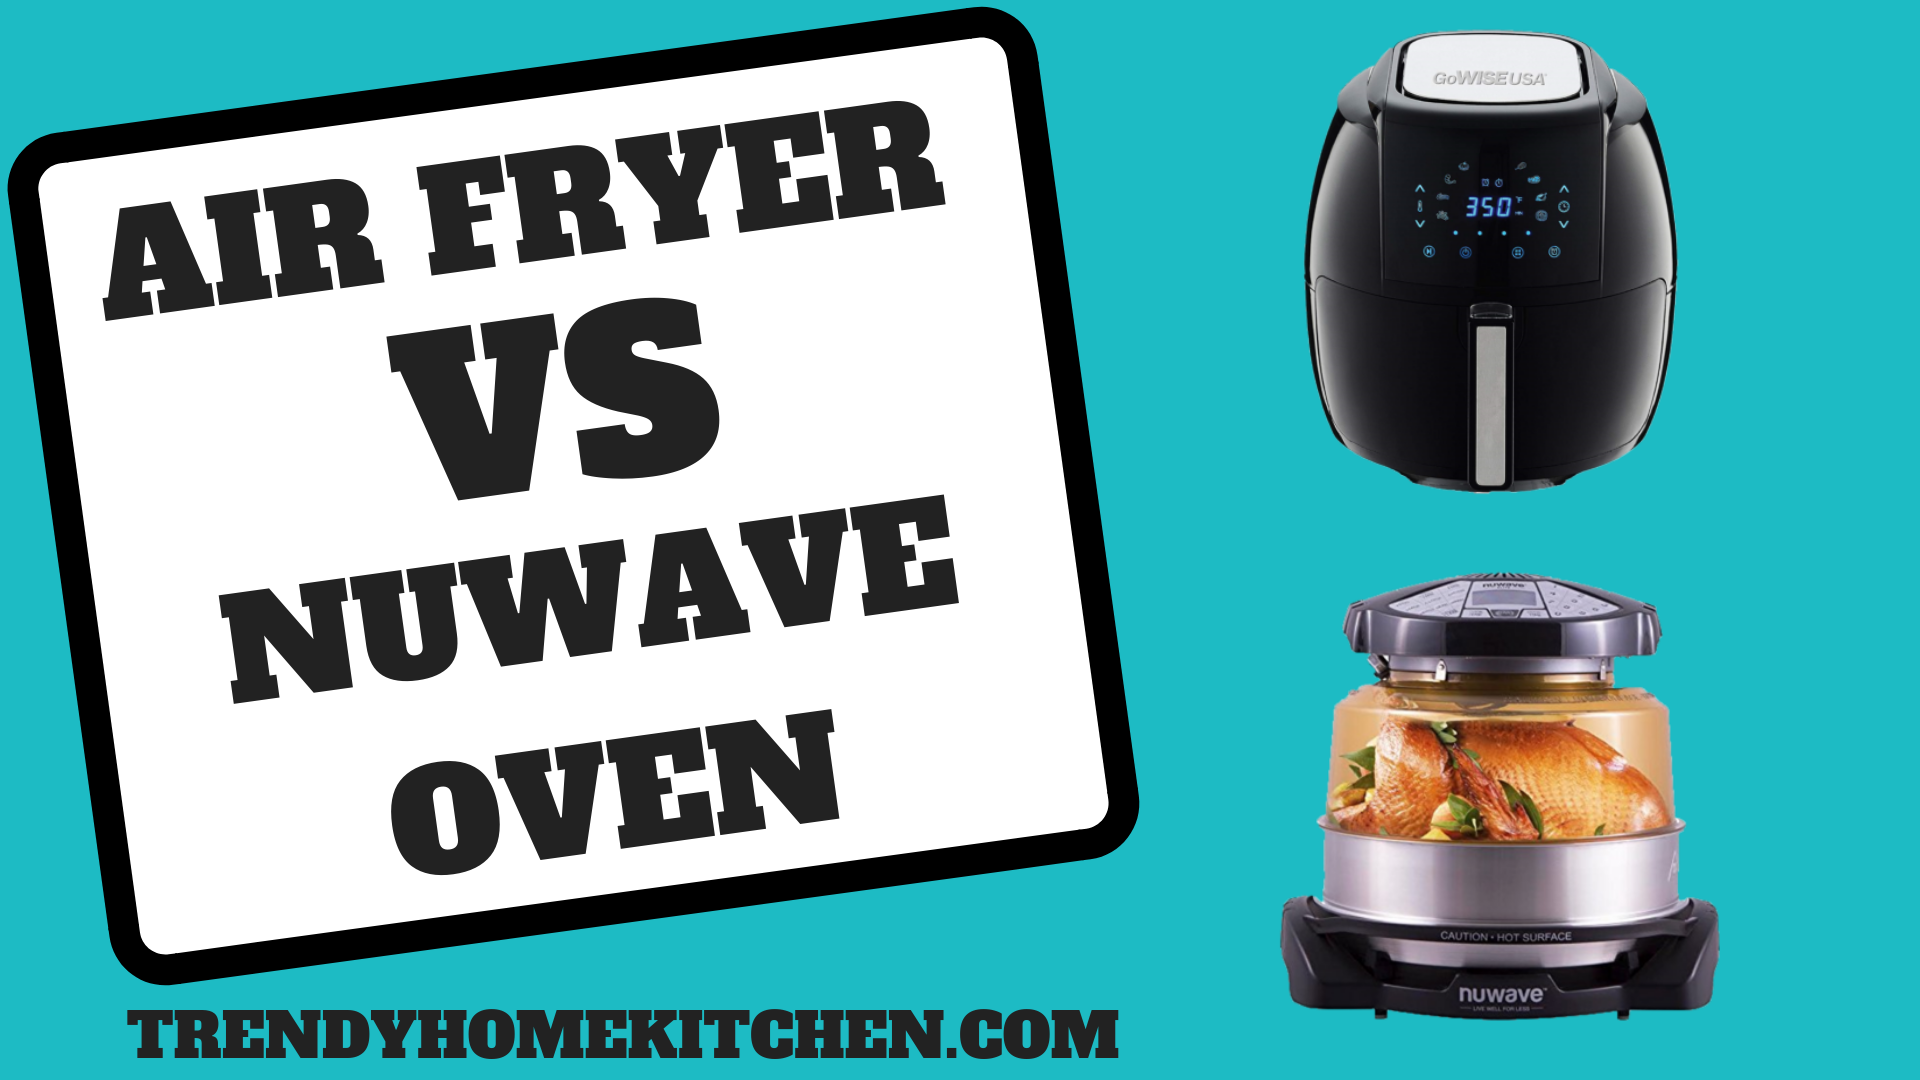 Air fryer vs Nuwave Oven Which is Better Trendy home